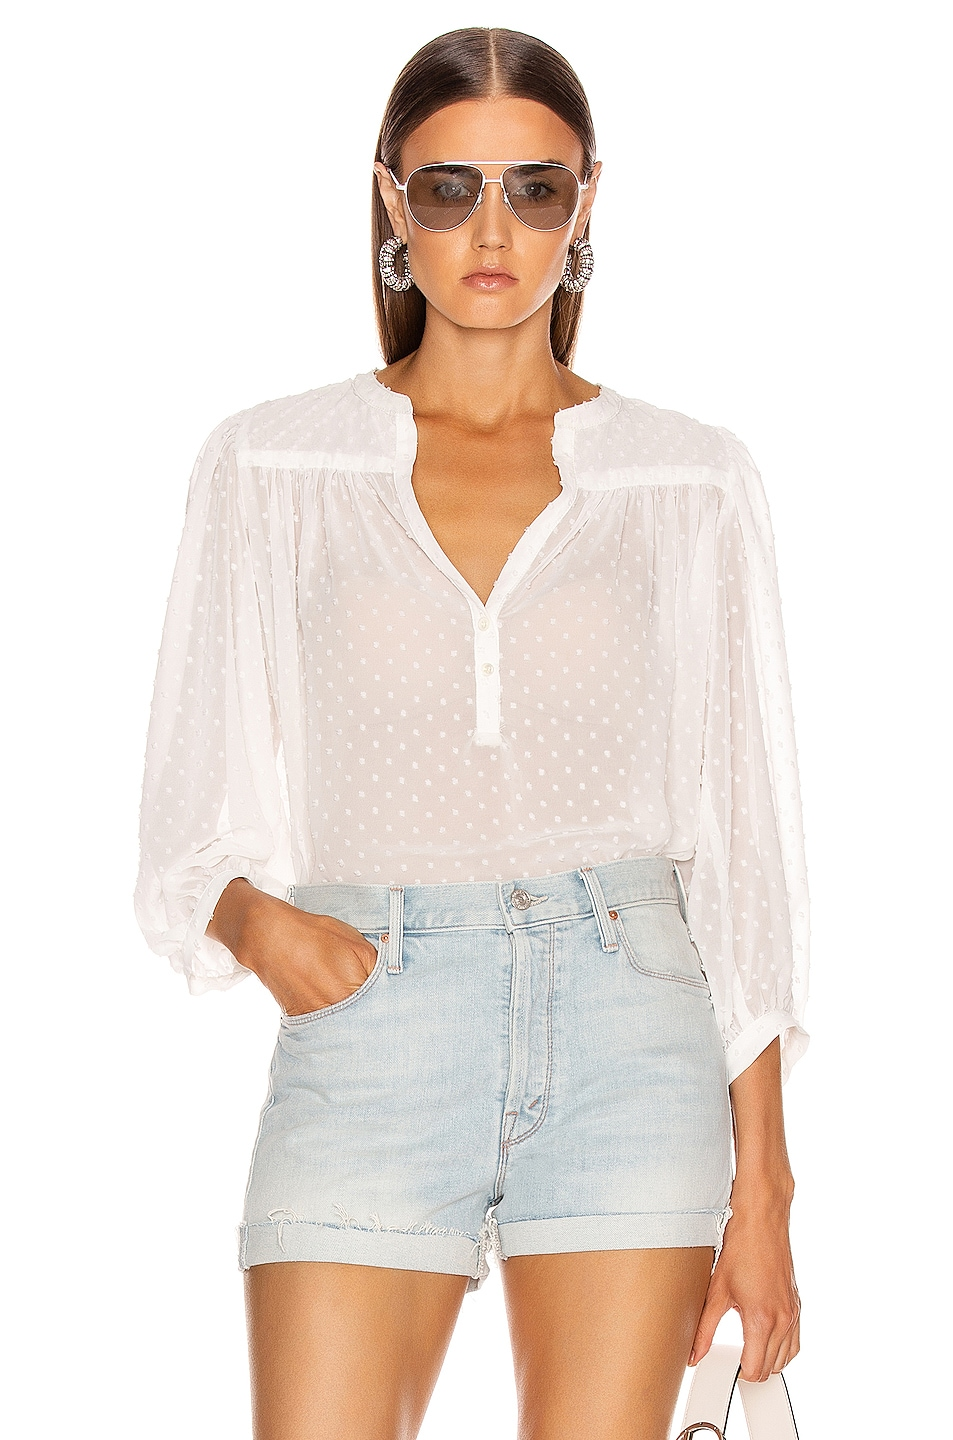 Image 1 of ICONS Objects of Devotion The Modern Poet Top in White